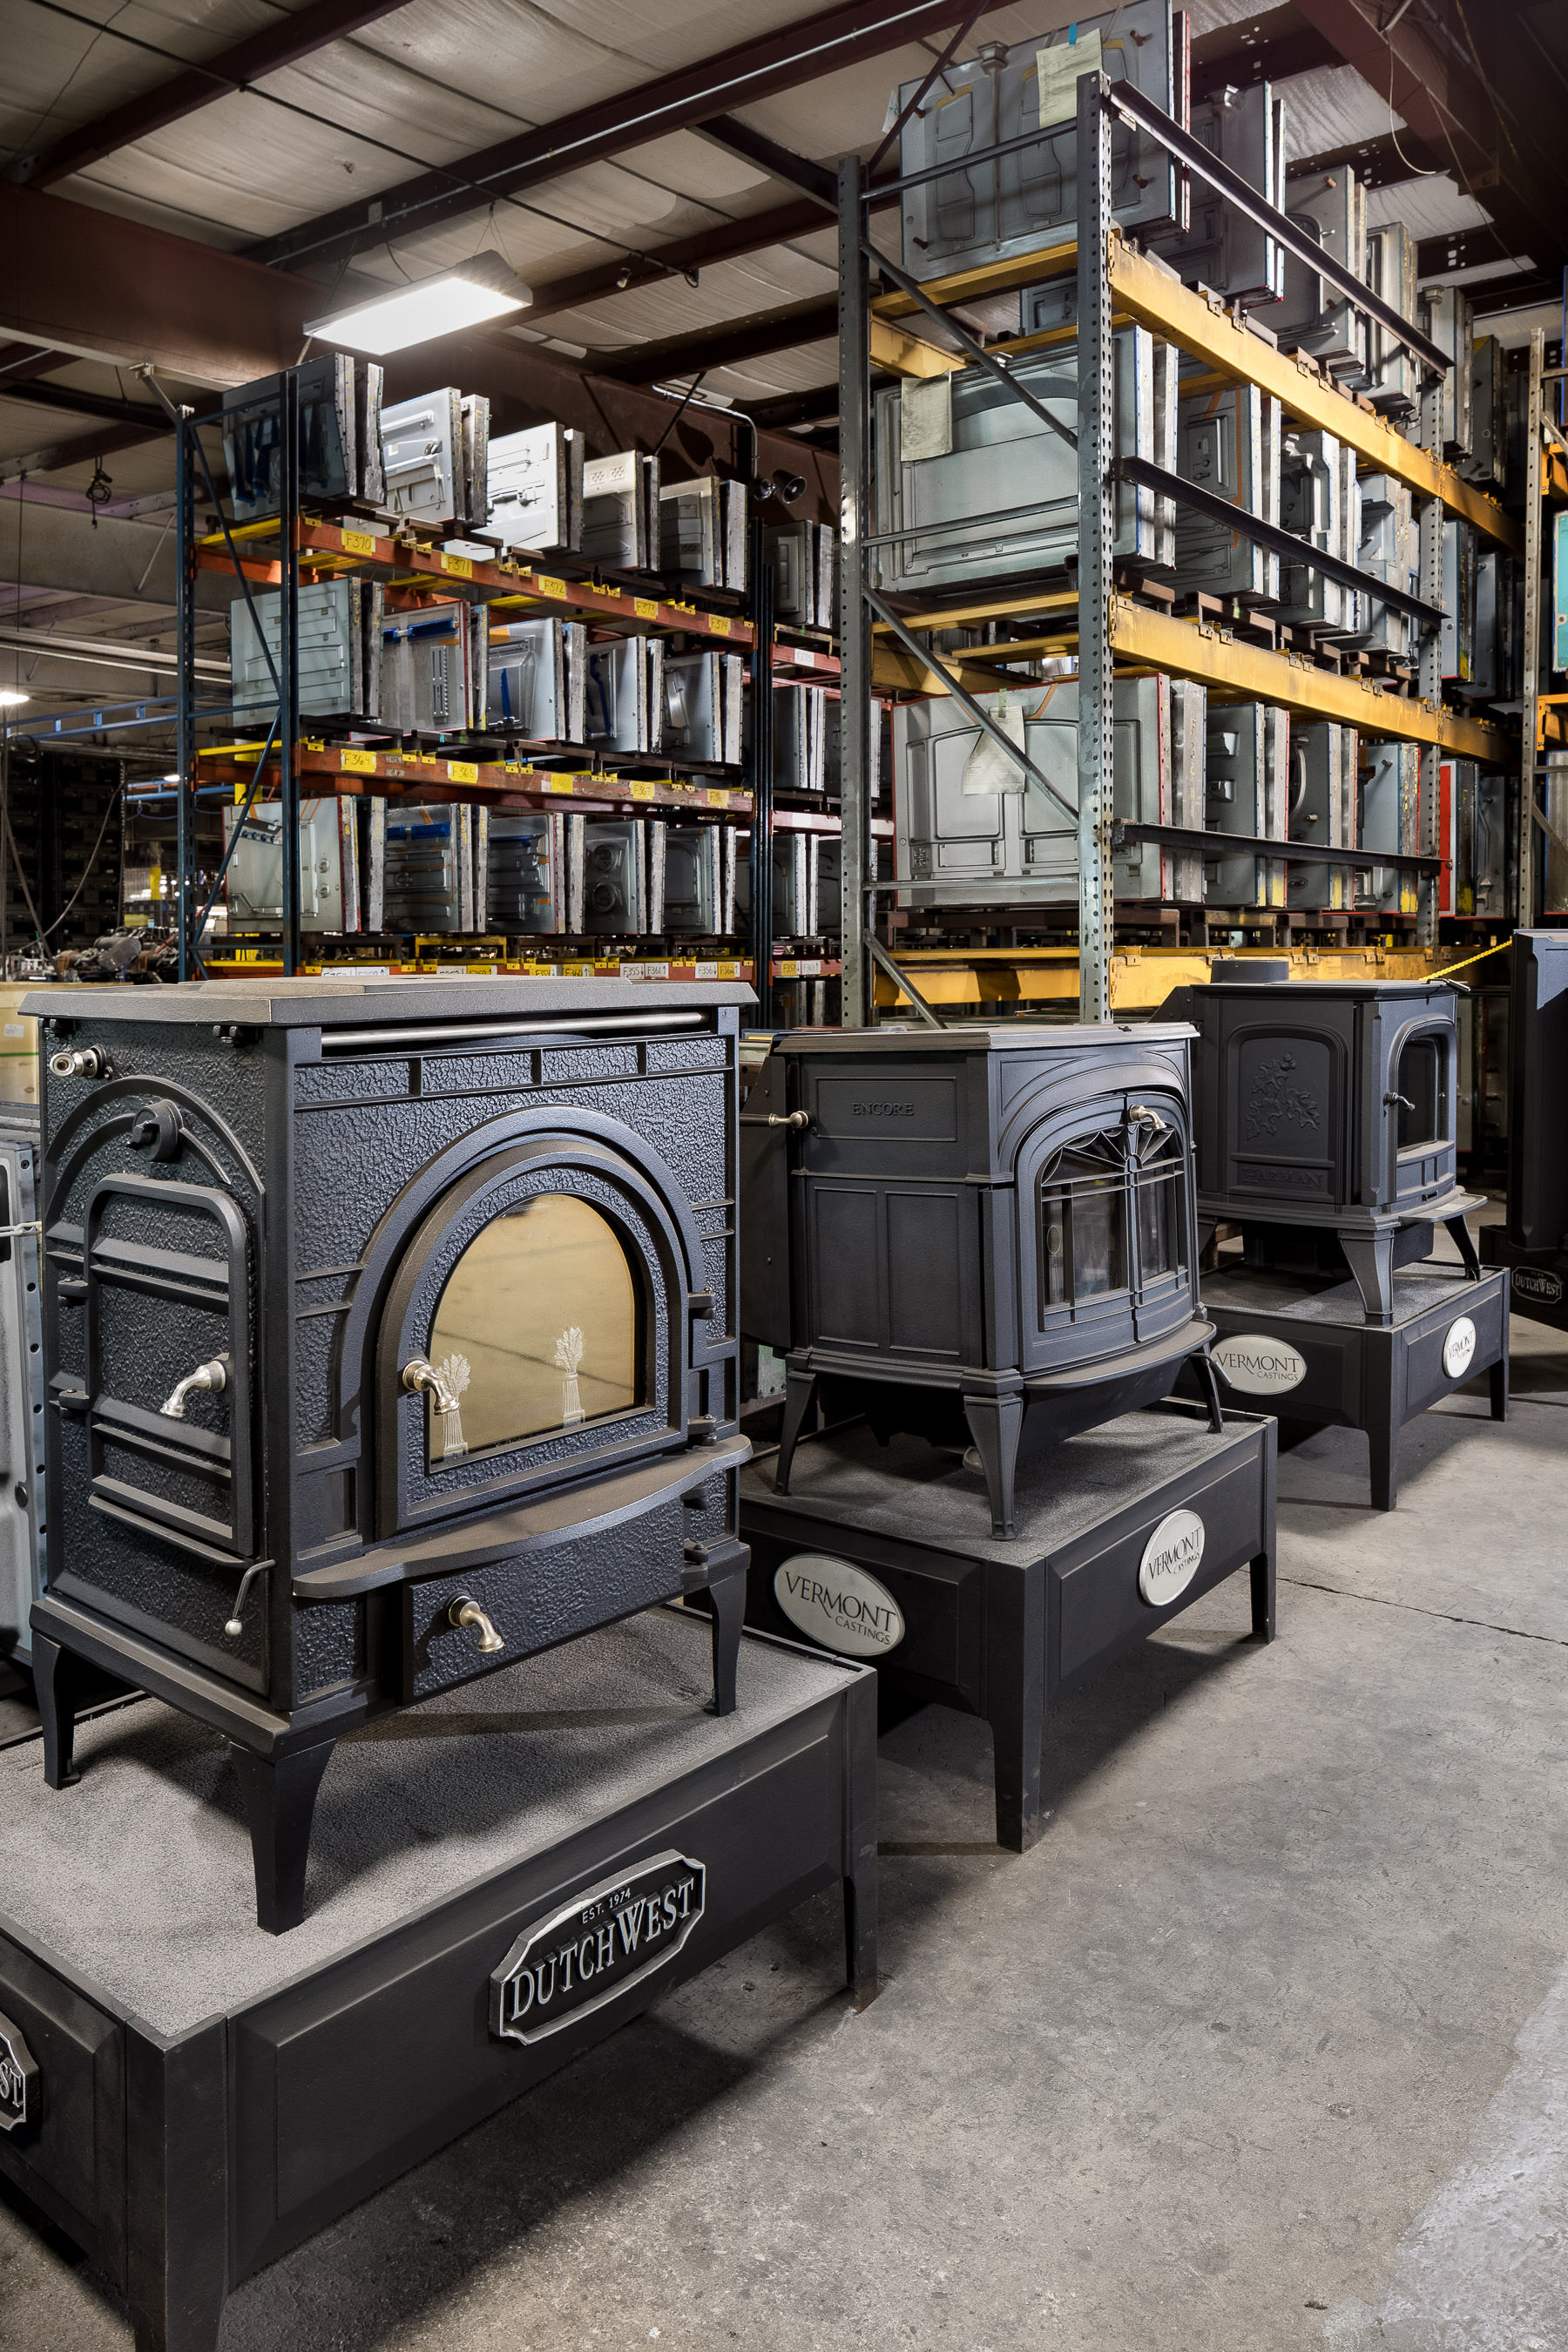 An interior photo of the cast storage space at the Vermont Castings manufacturing facility built by Neagley & Chase Construction and photographed by Stina Booth